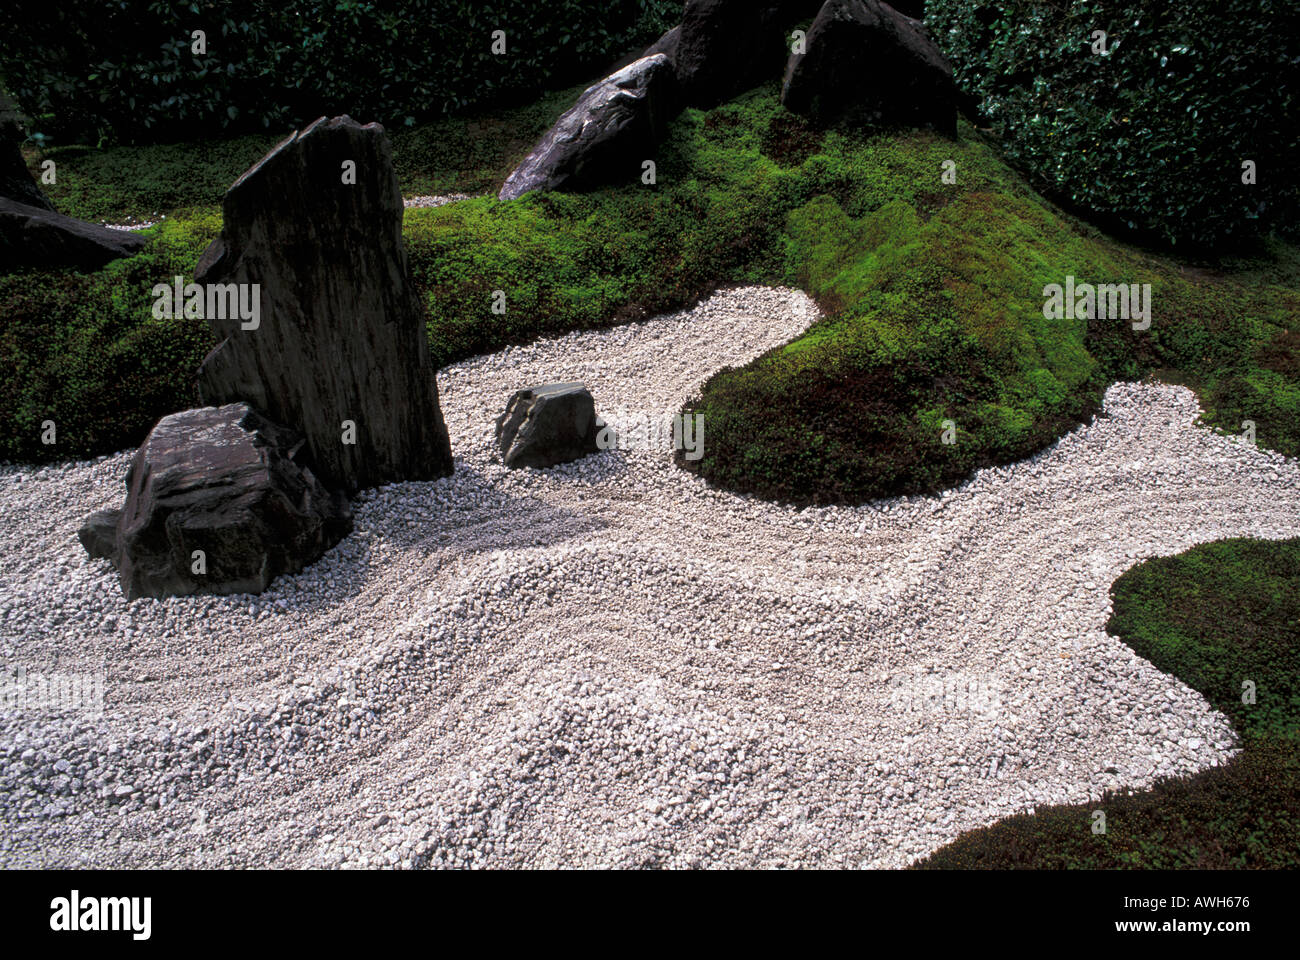 Marvelous Rock Gravel And Moss Are The Main Components Of The Zen Garden Of Zuiho In  Temple Kyoto Japan